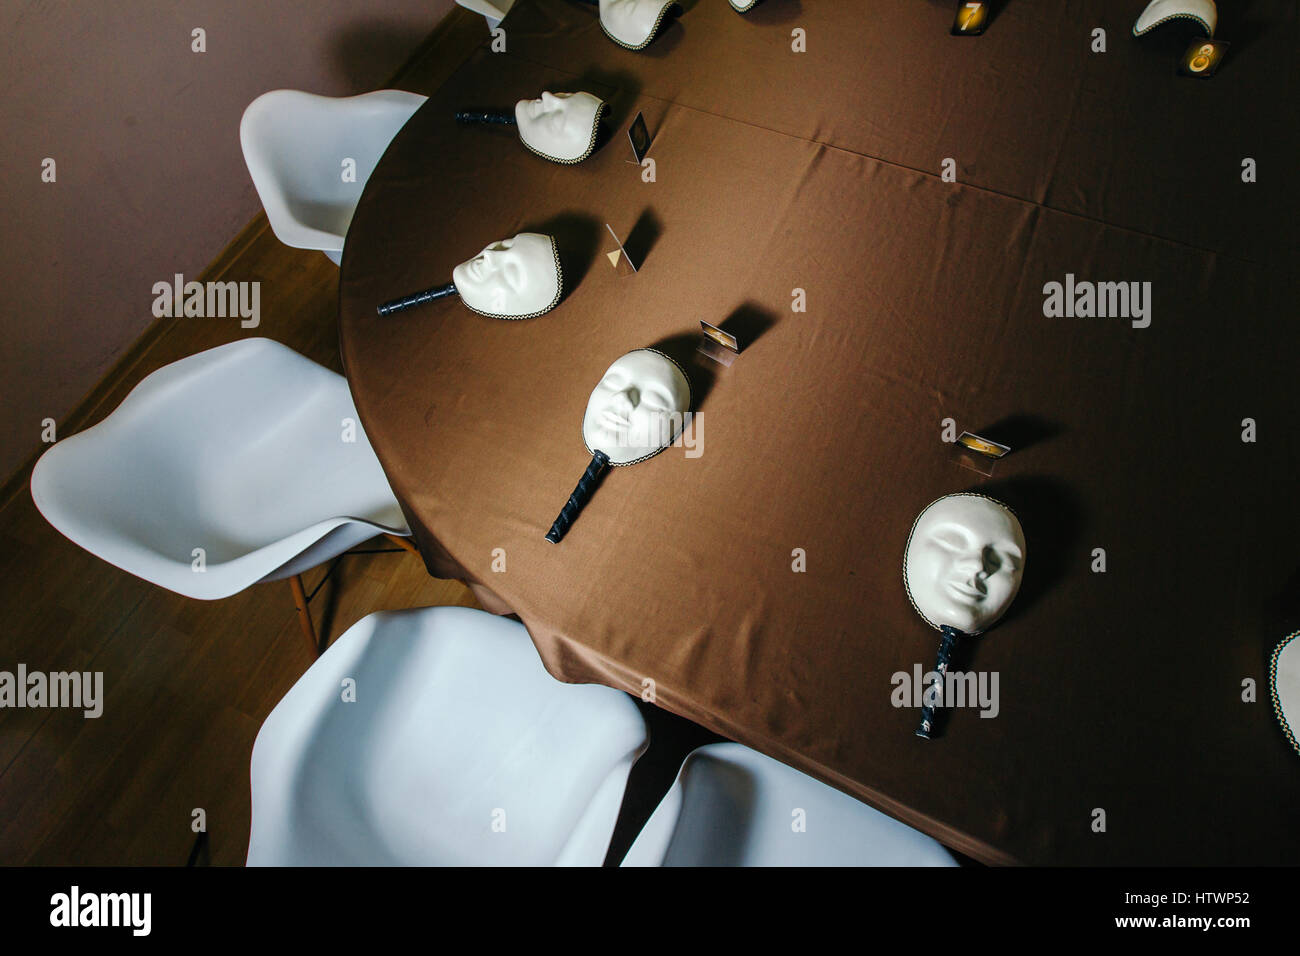 White masks for playing in the mafia on the table. - Stock Image